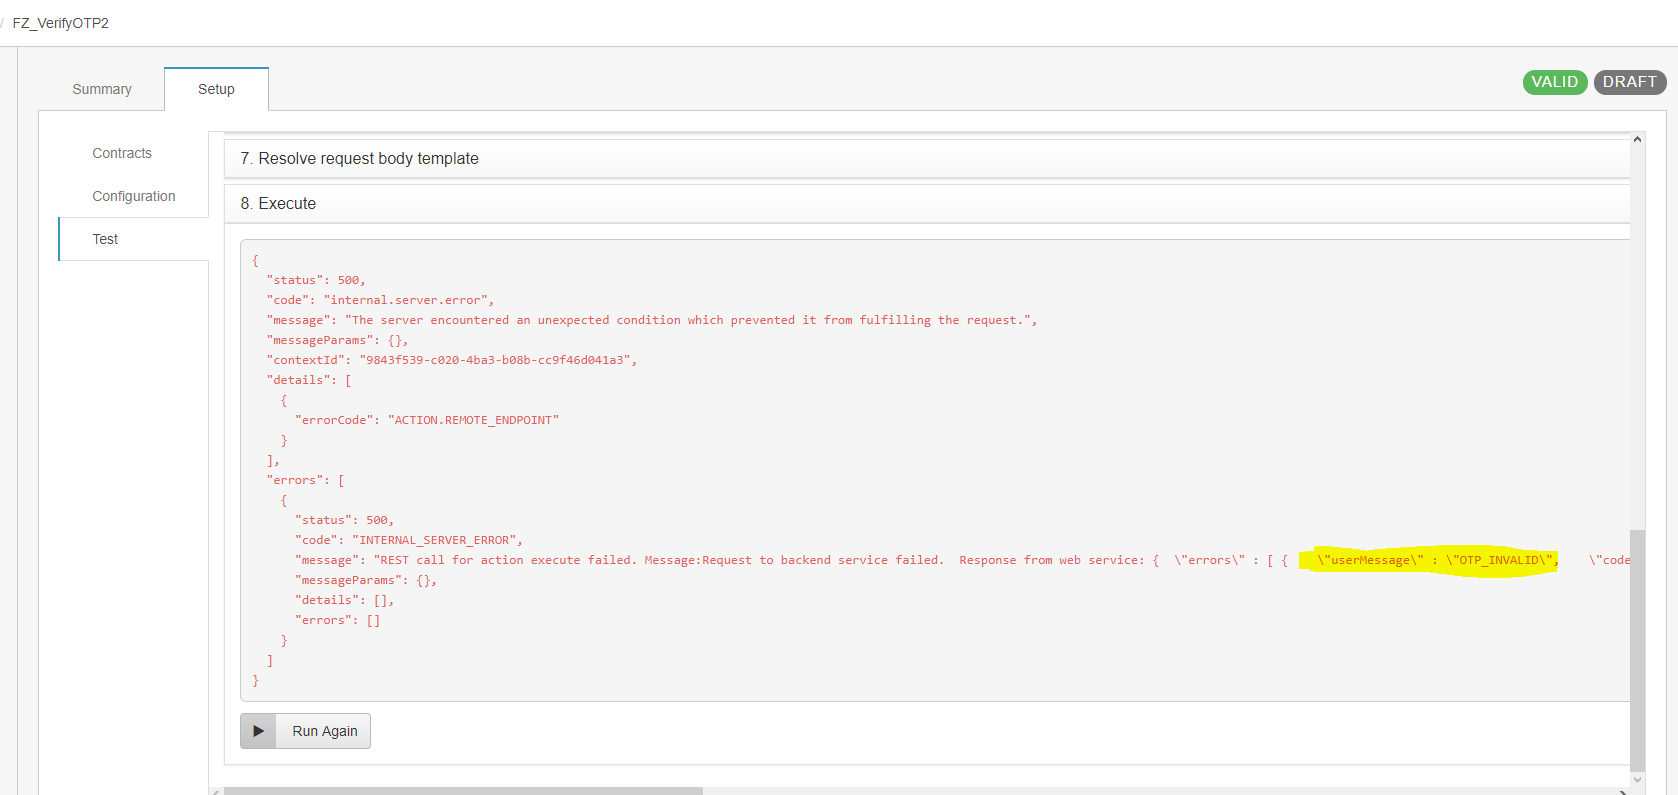 Postman and PureCloud UI Test have different error response